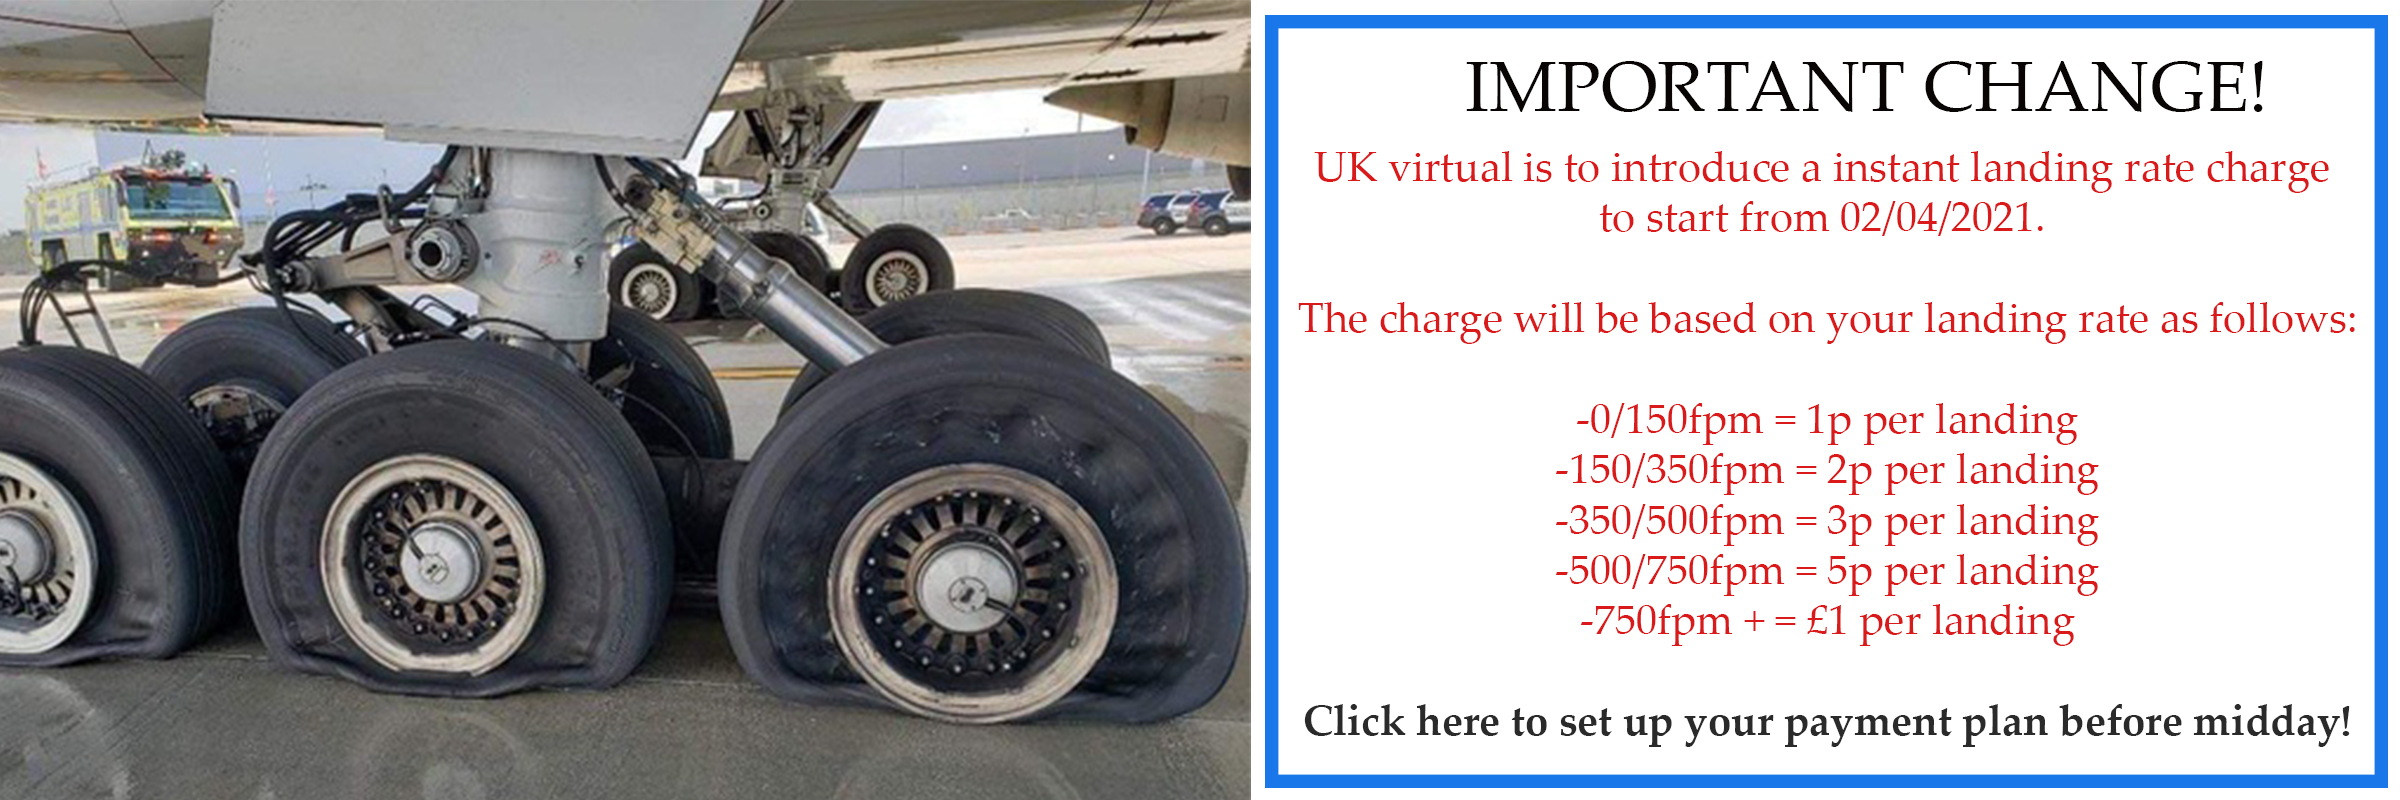 UK virtual to charge for landings